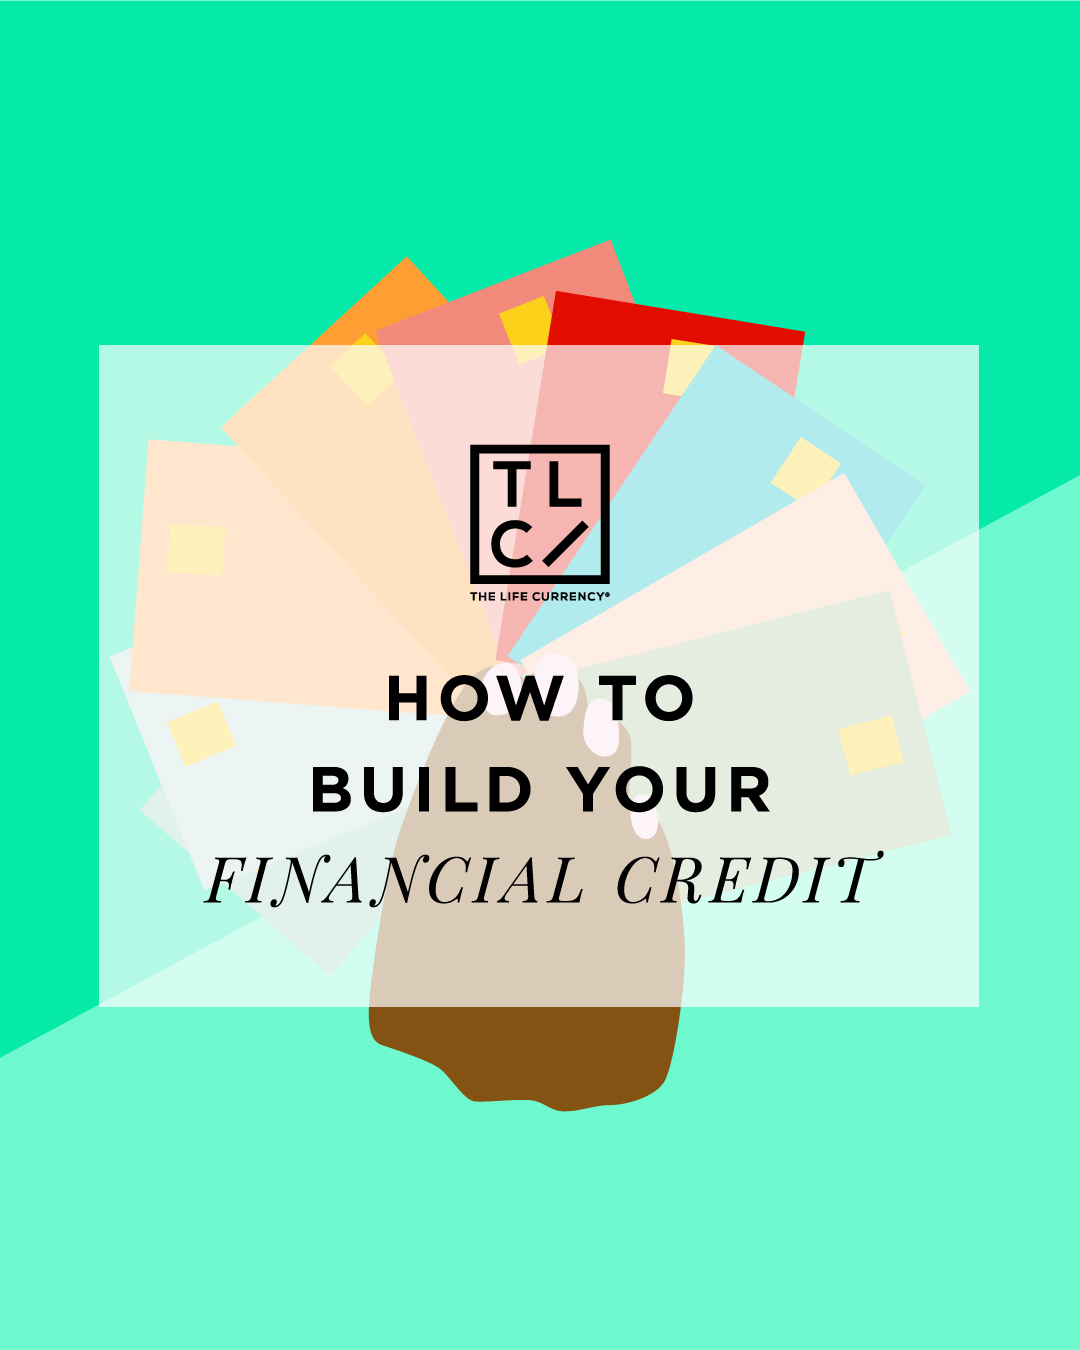 How to Build Your Financial Credit